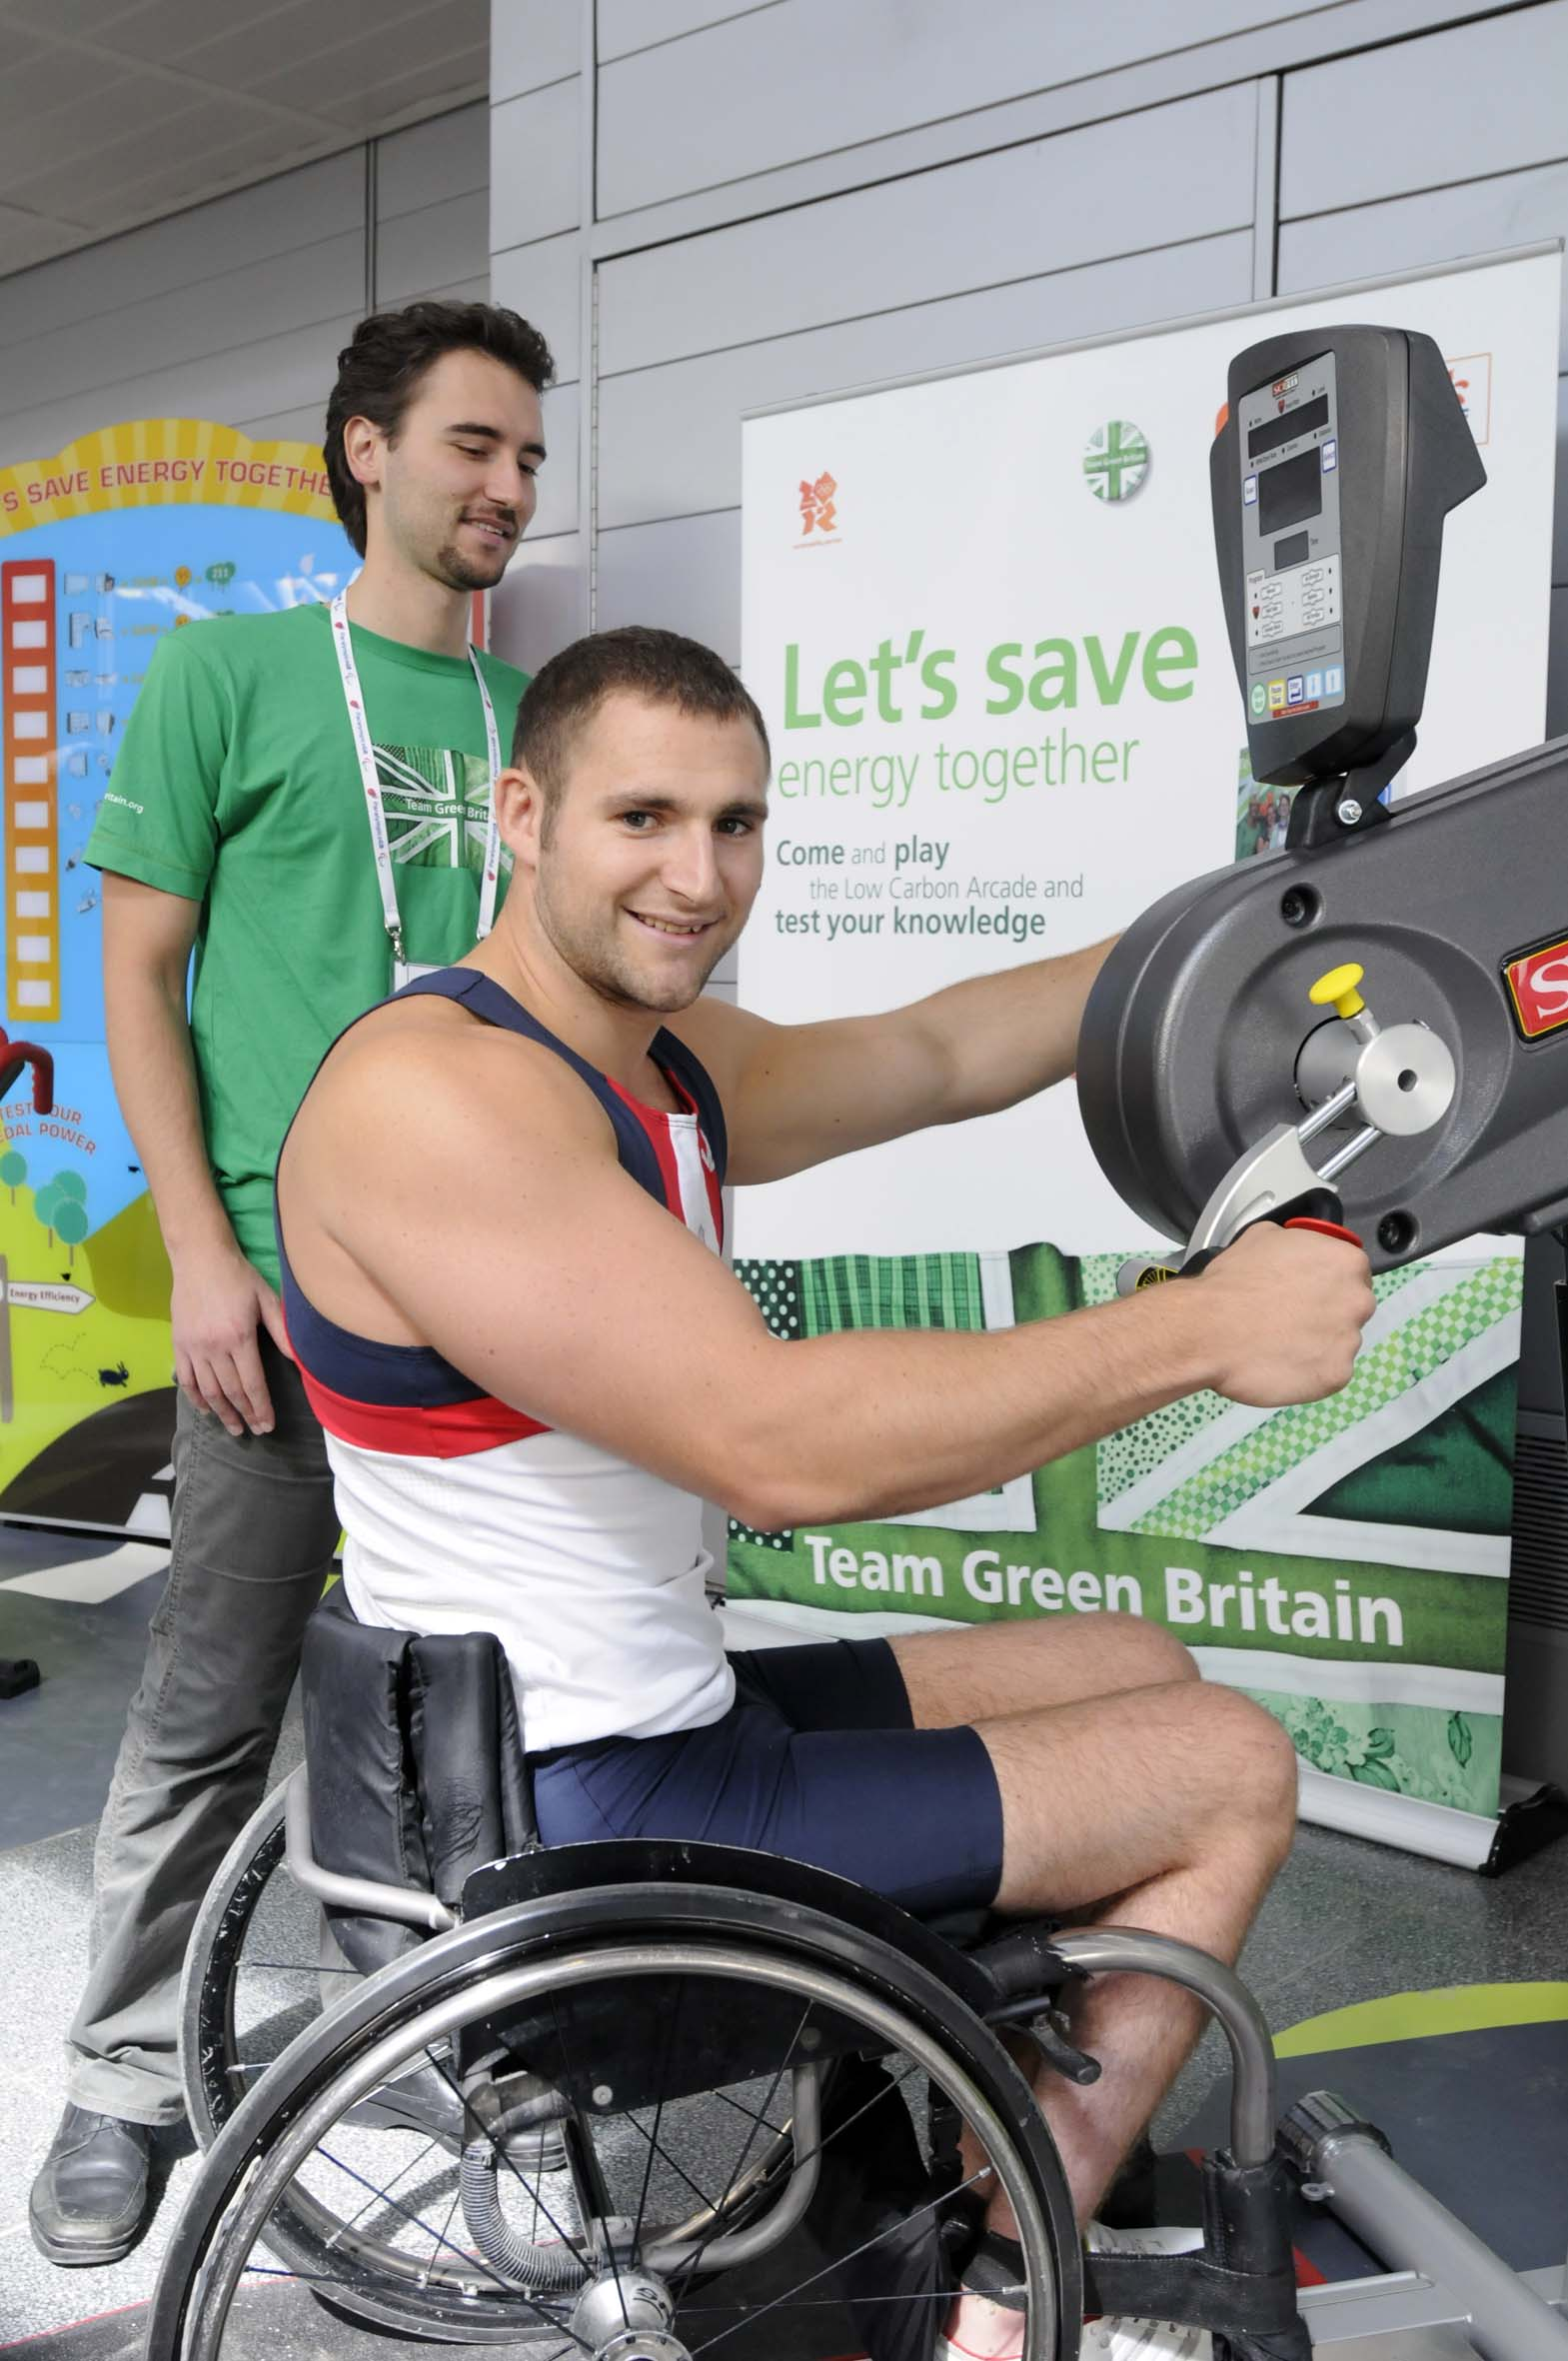 Tom Aggar gold medal winner in mens single scull rowing at the Beijing Paralympics demos the energy producing stationary hand cycle